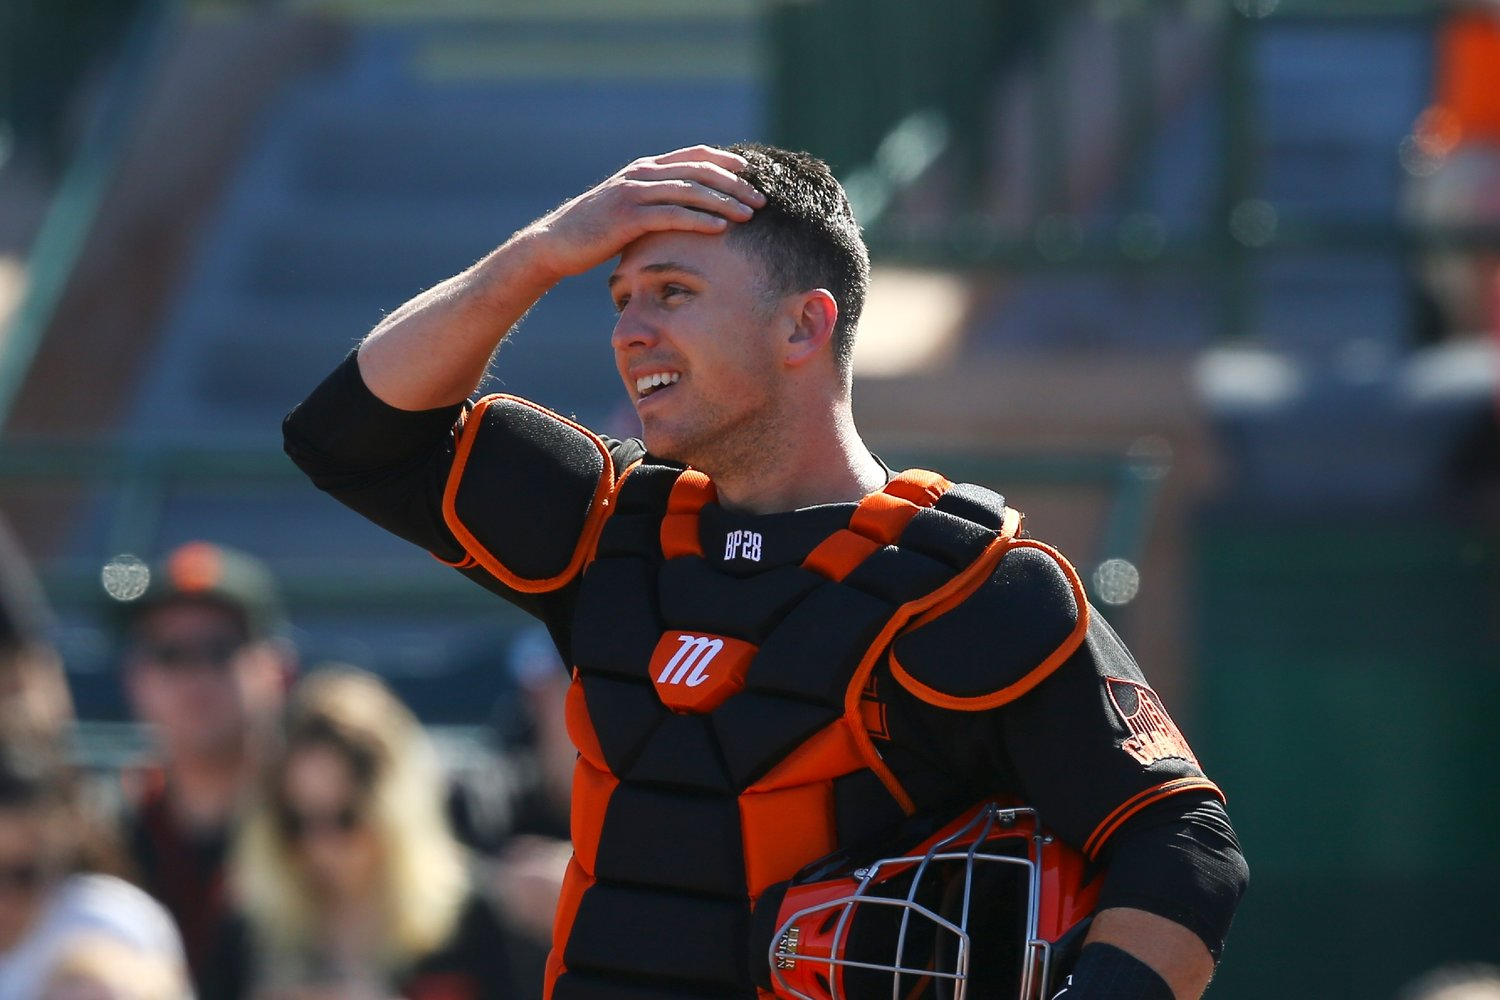 Posey out for 2020 as MLB teams deal with churning rosters | Daily ...